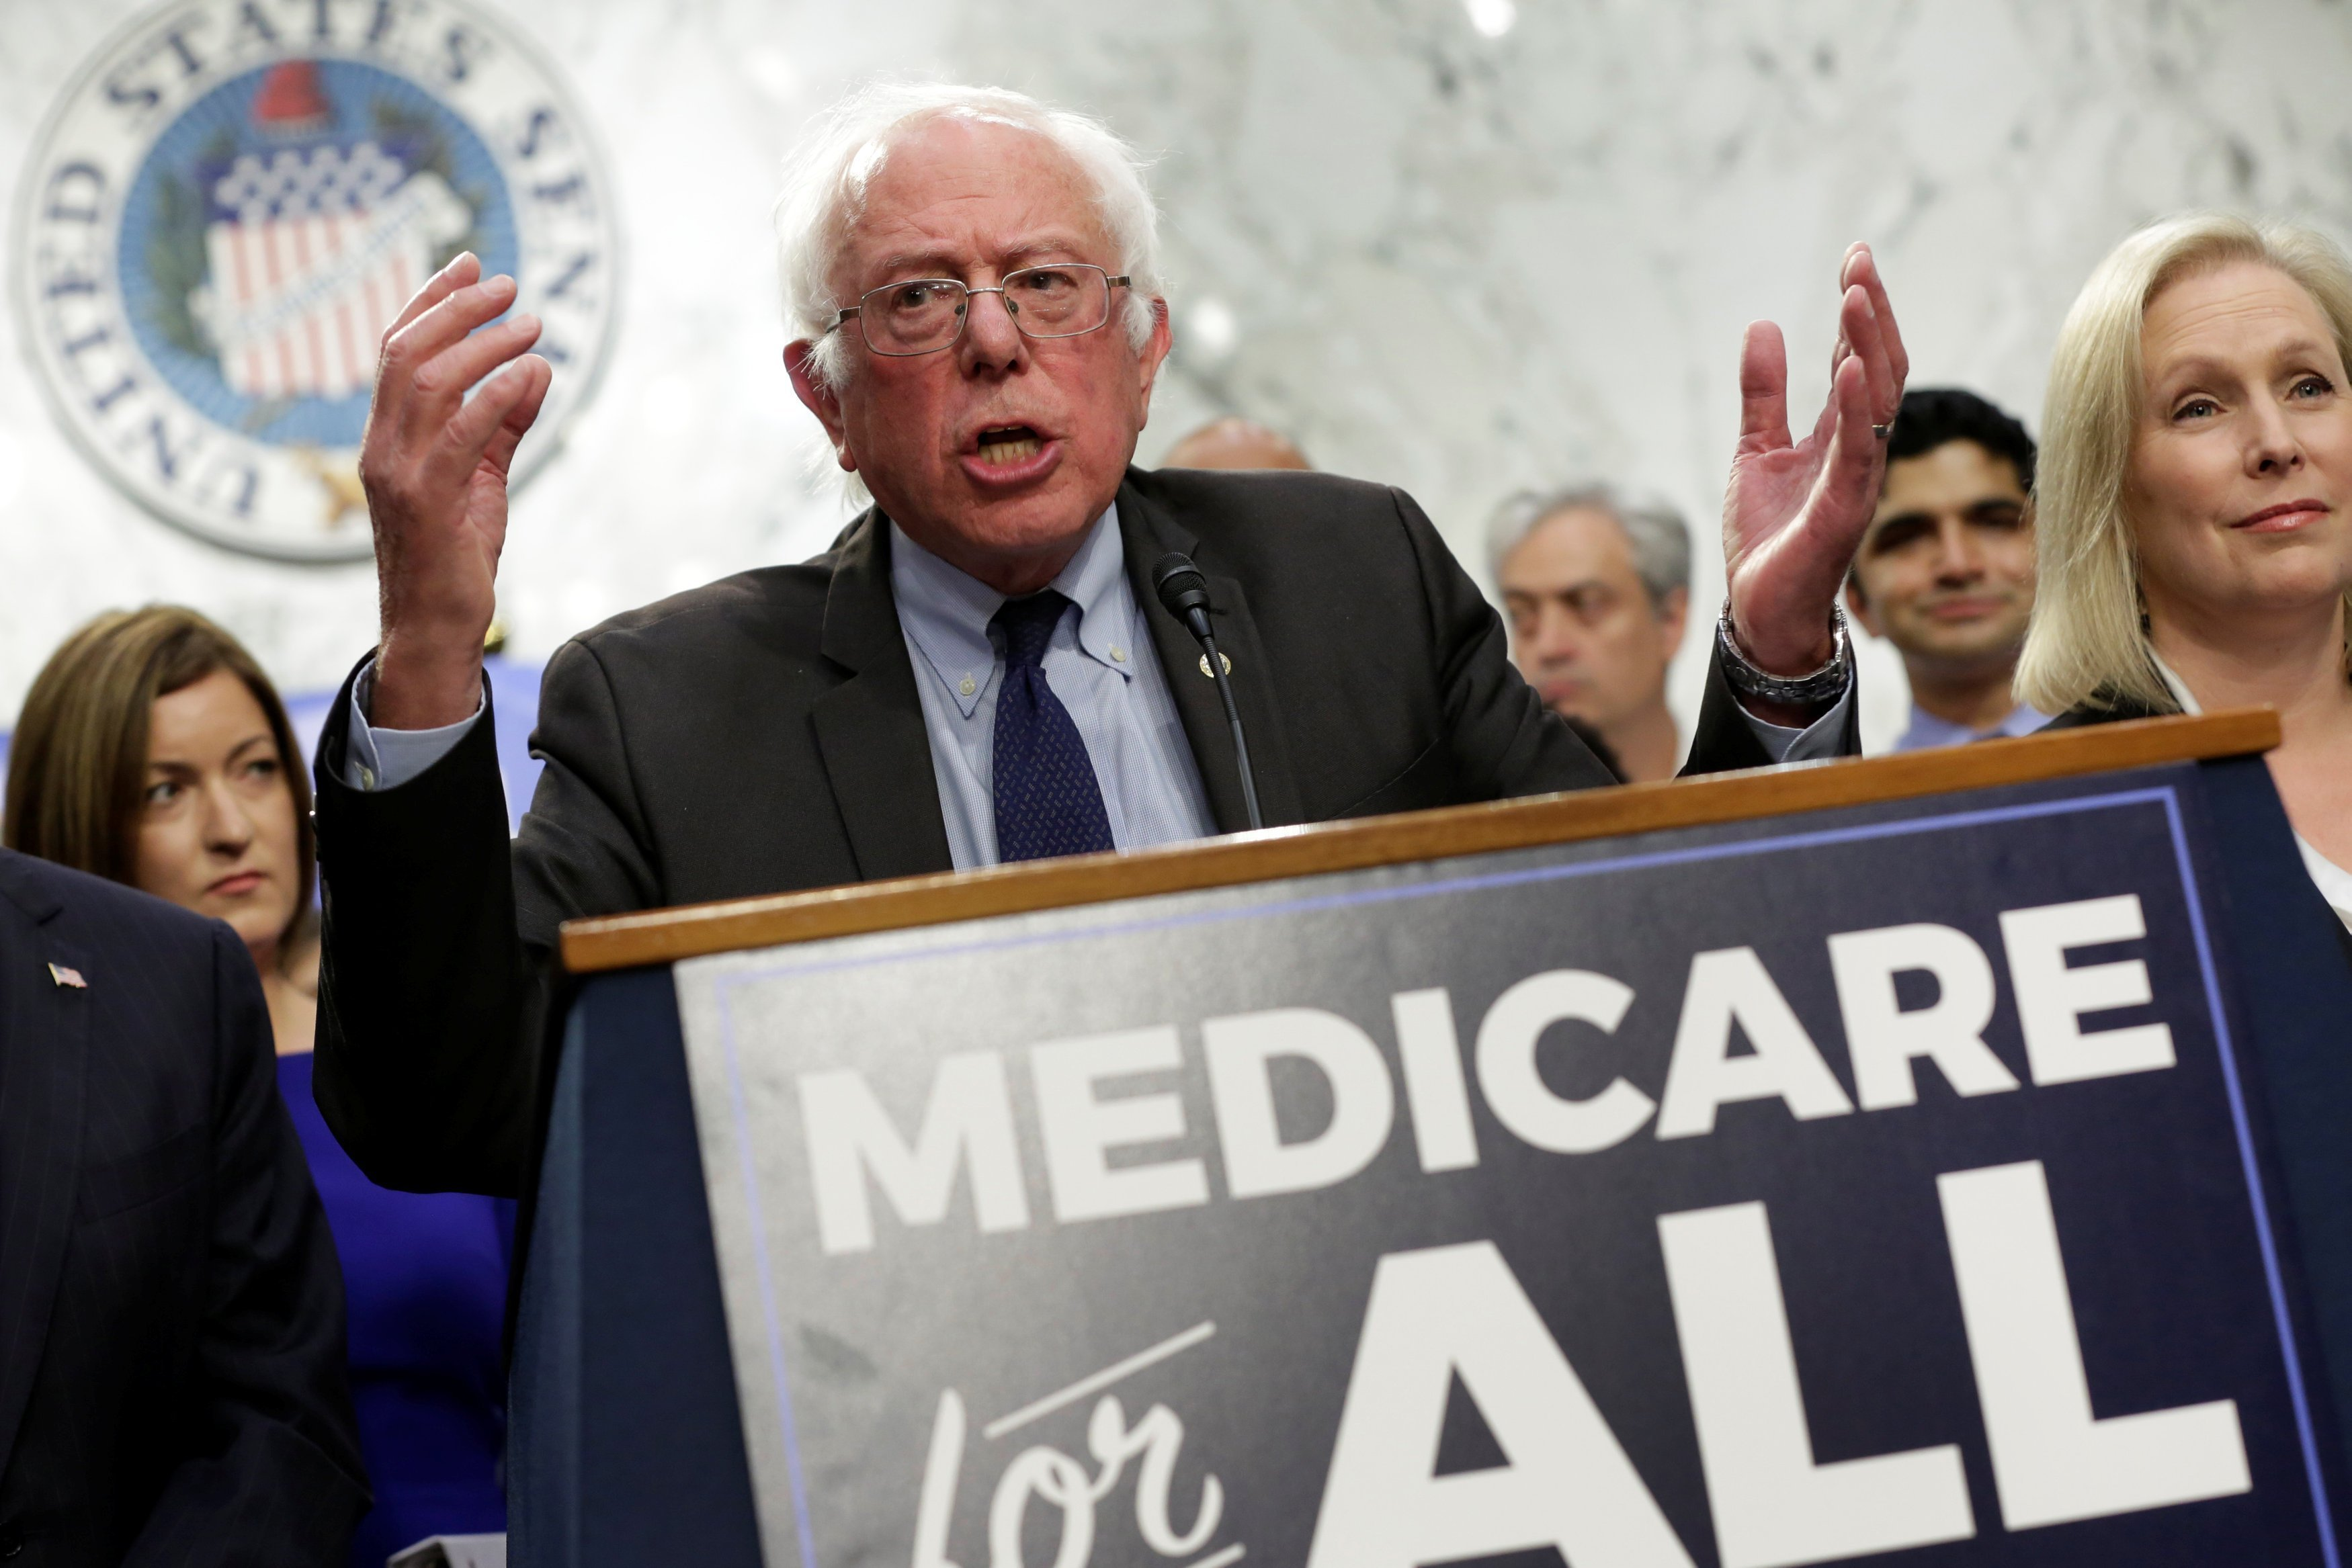 Sanders- Medicare for all